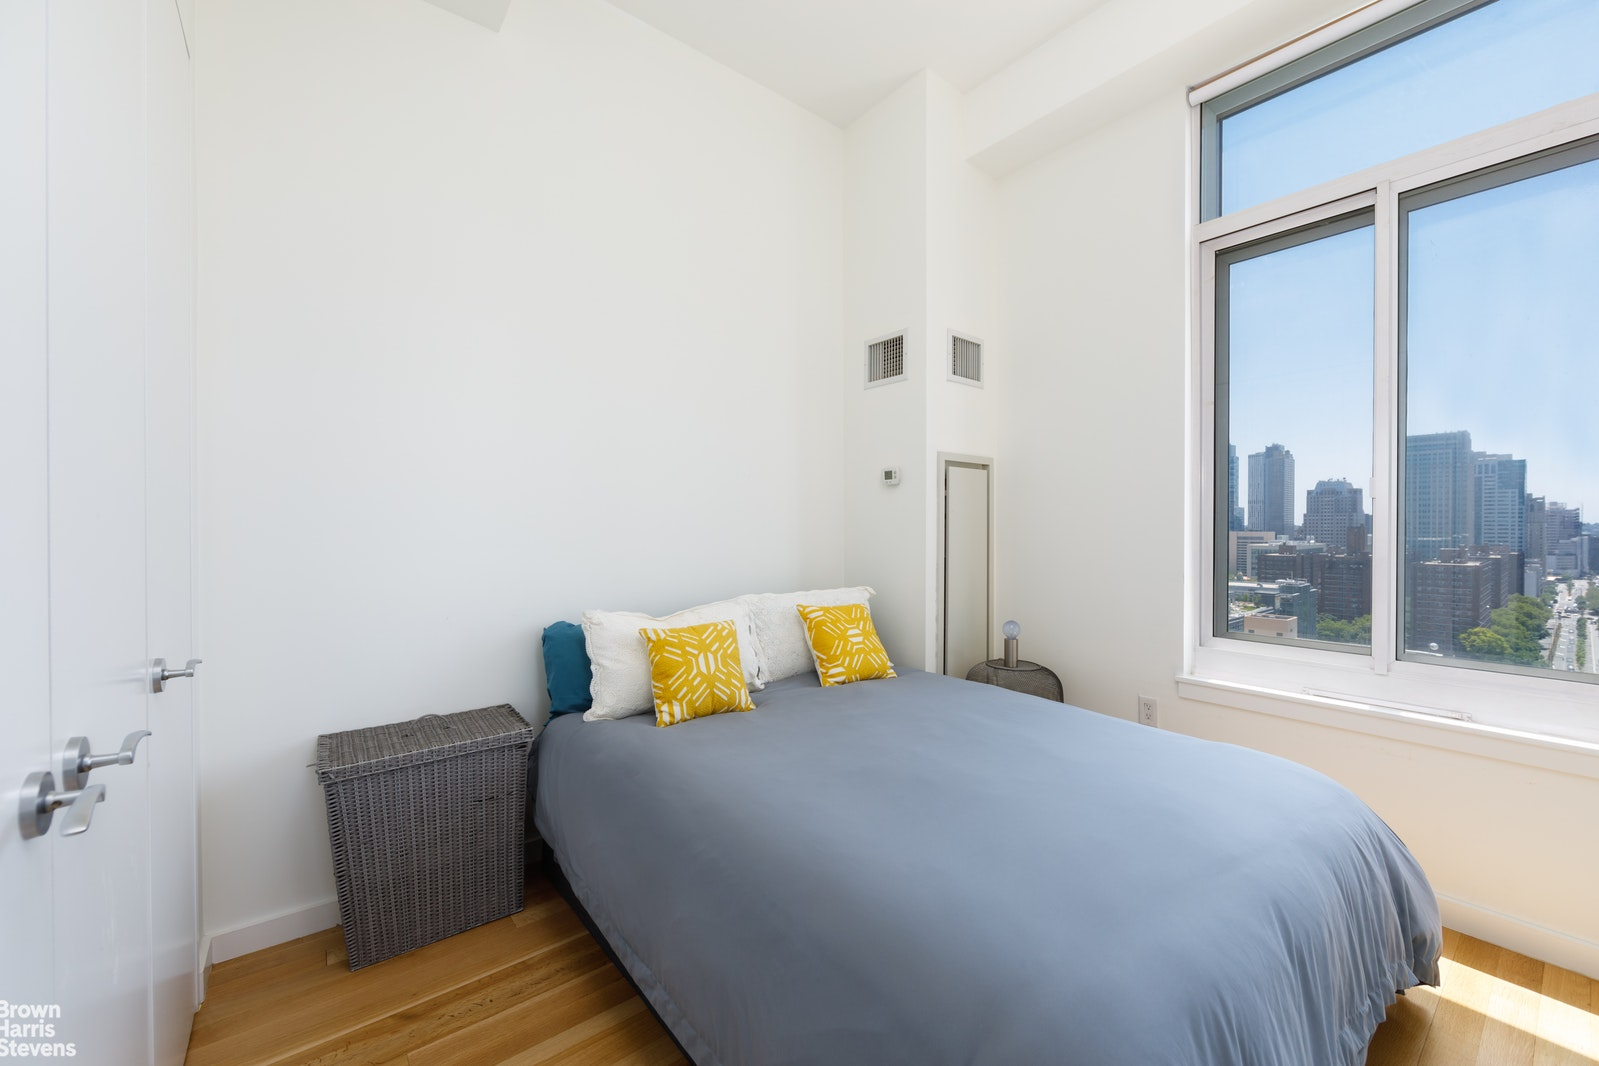 85 Adams Street 19a, Dumbo, Brooklyn, NY, 11201, $1,495,000, Property For Sale, Halstead Real Estate, Photo 4